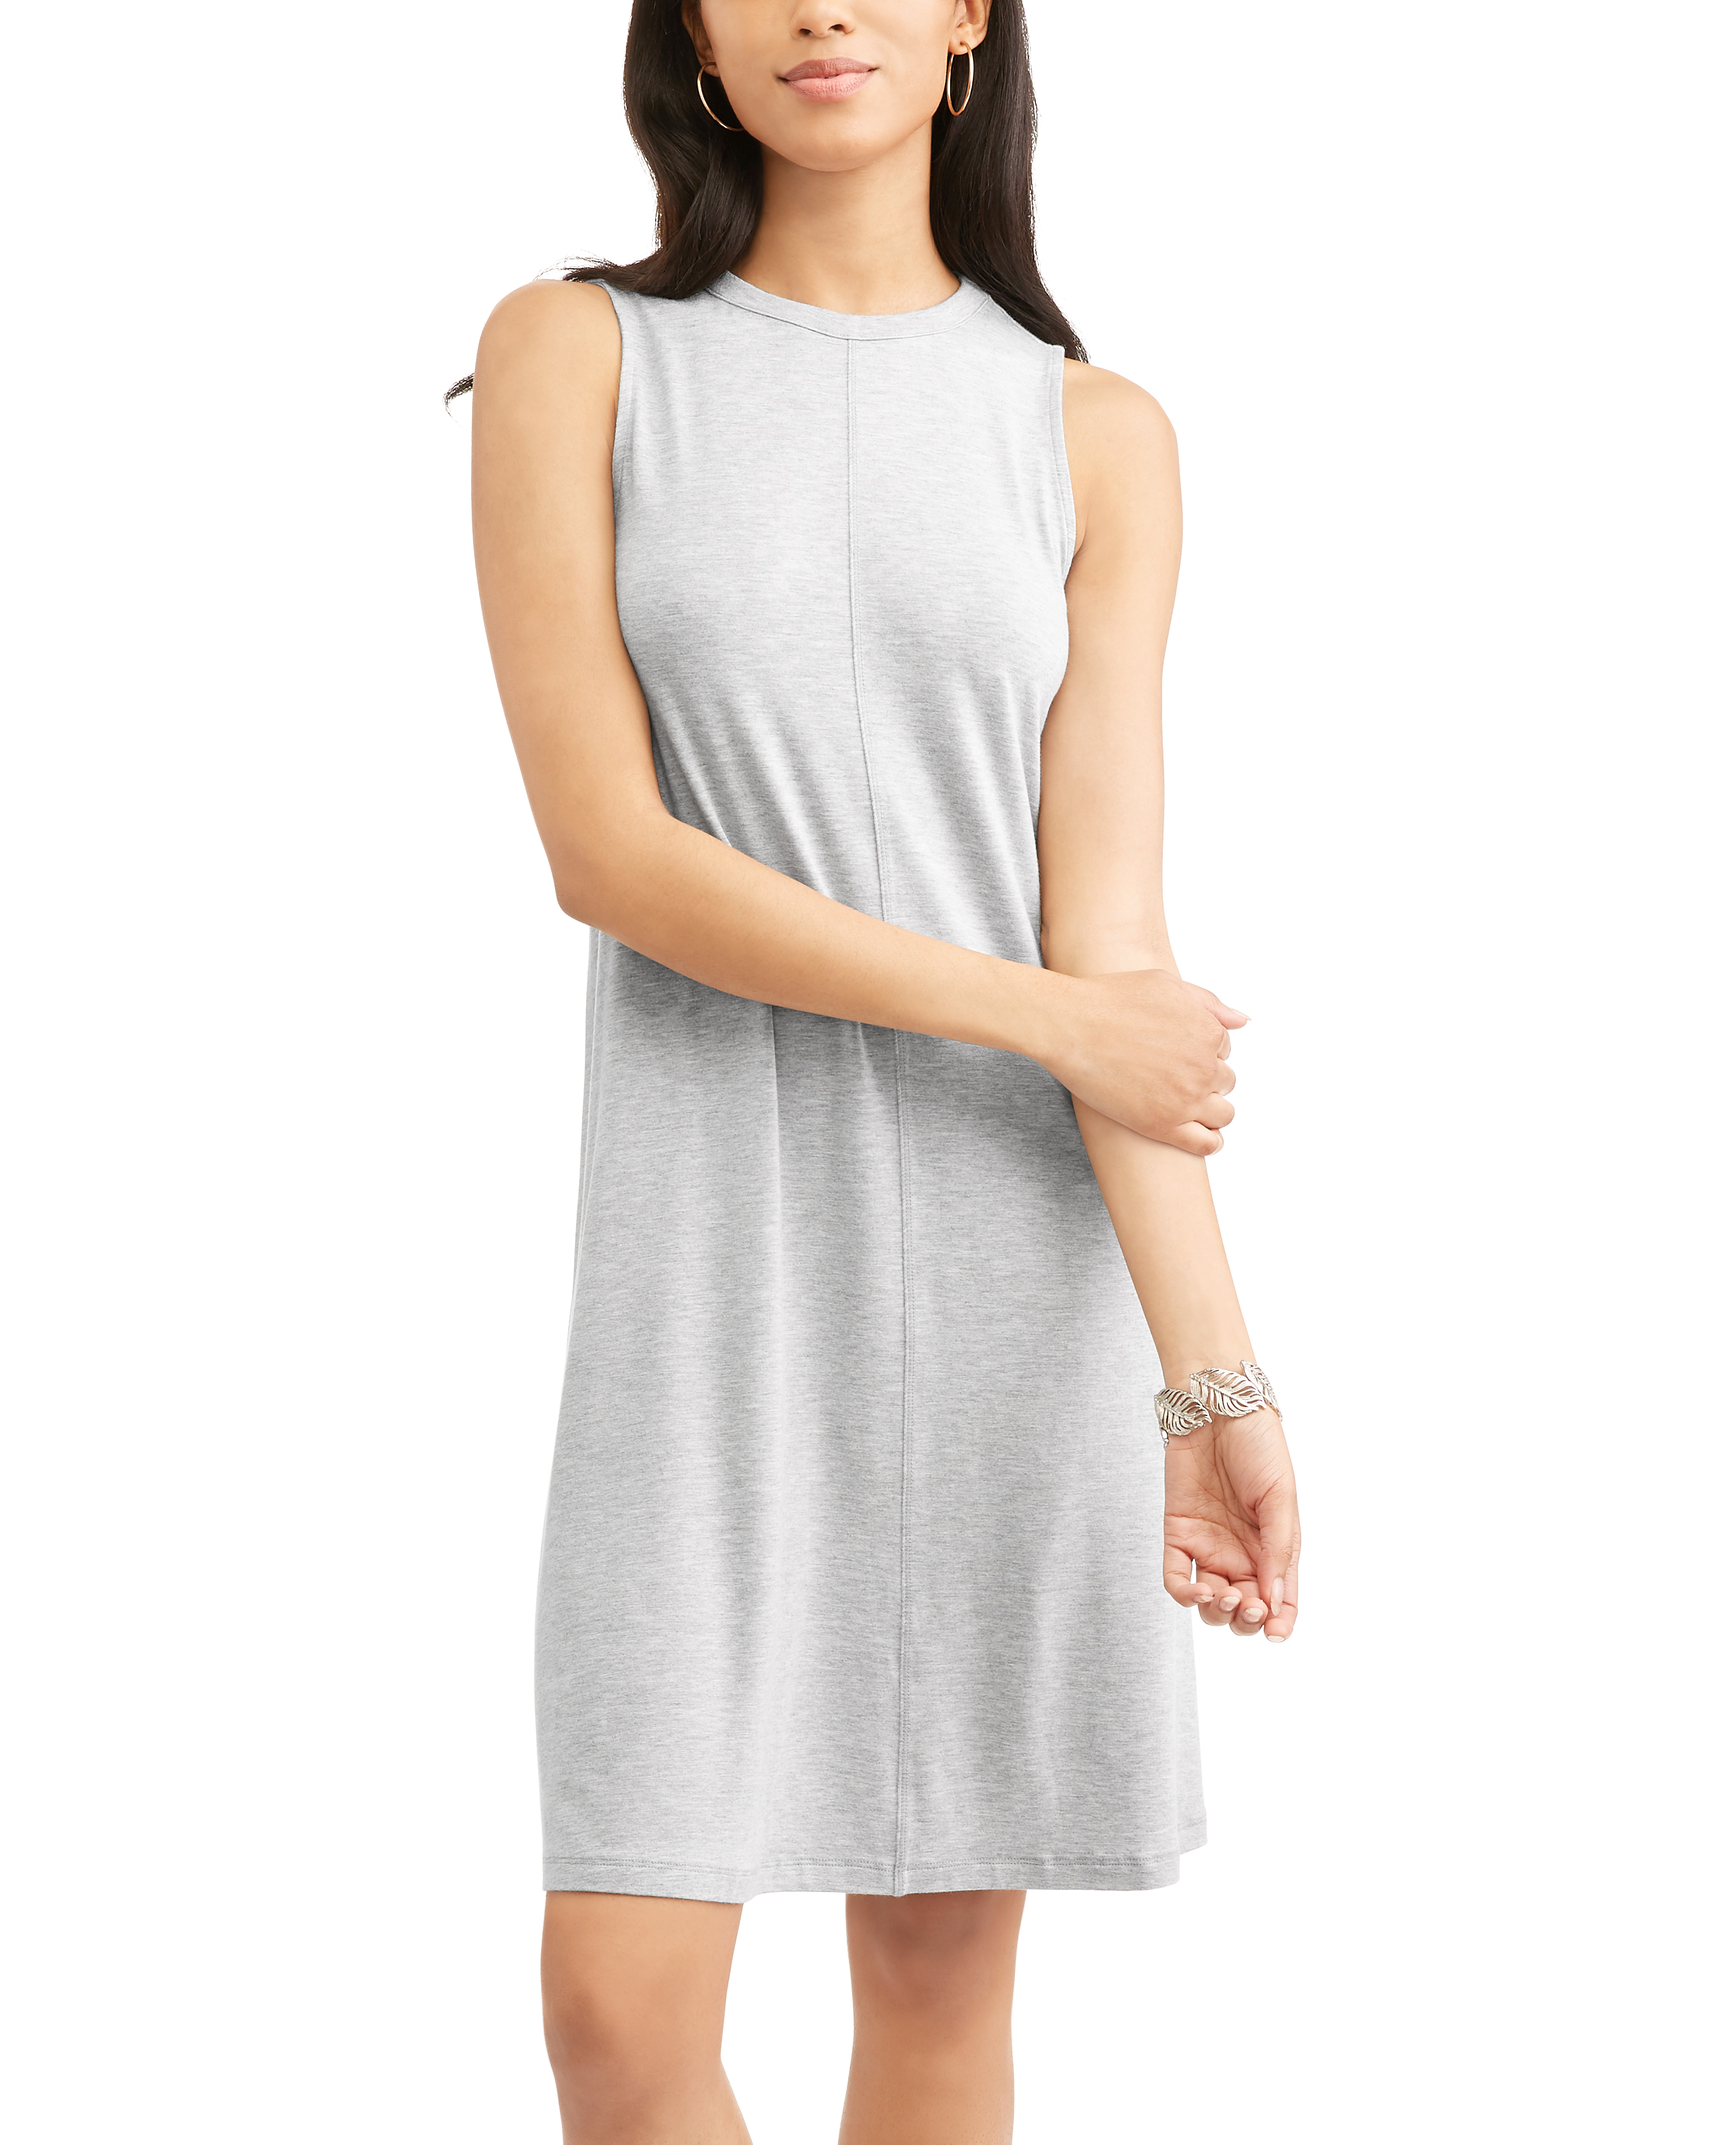 Women's High Neck Swing Dress